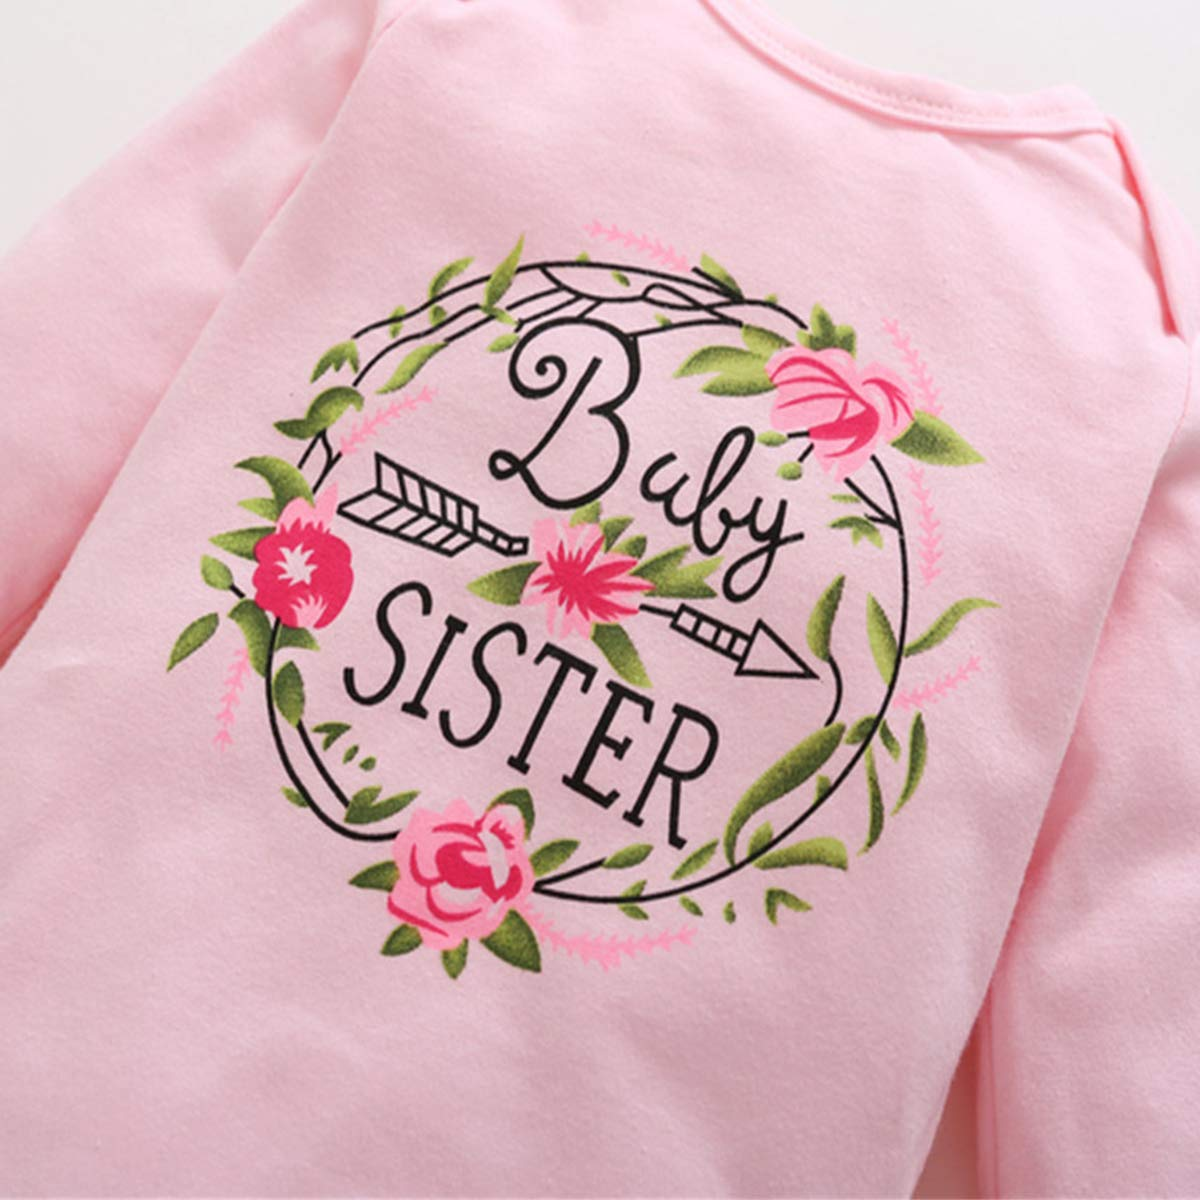 SS COLOR FISH 3 Pcs Halloween Newborn Infant Girl Clothes Baby Sister Little Sister Outfit 3-6 Months